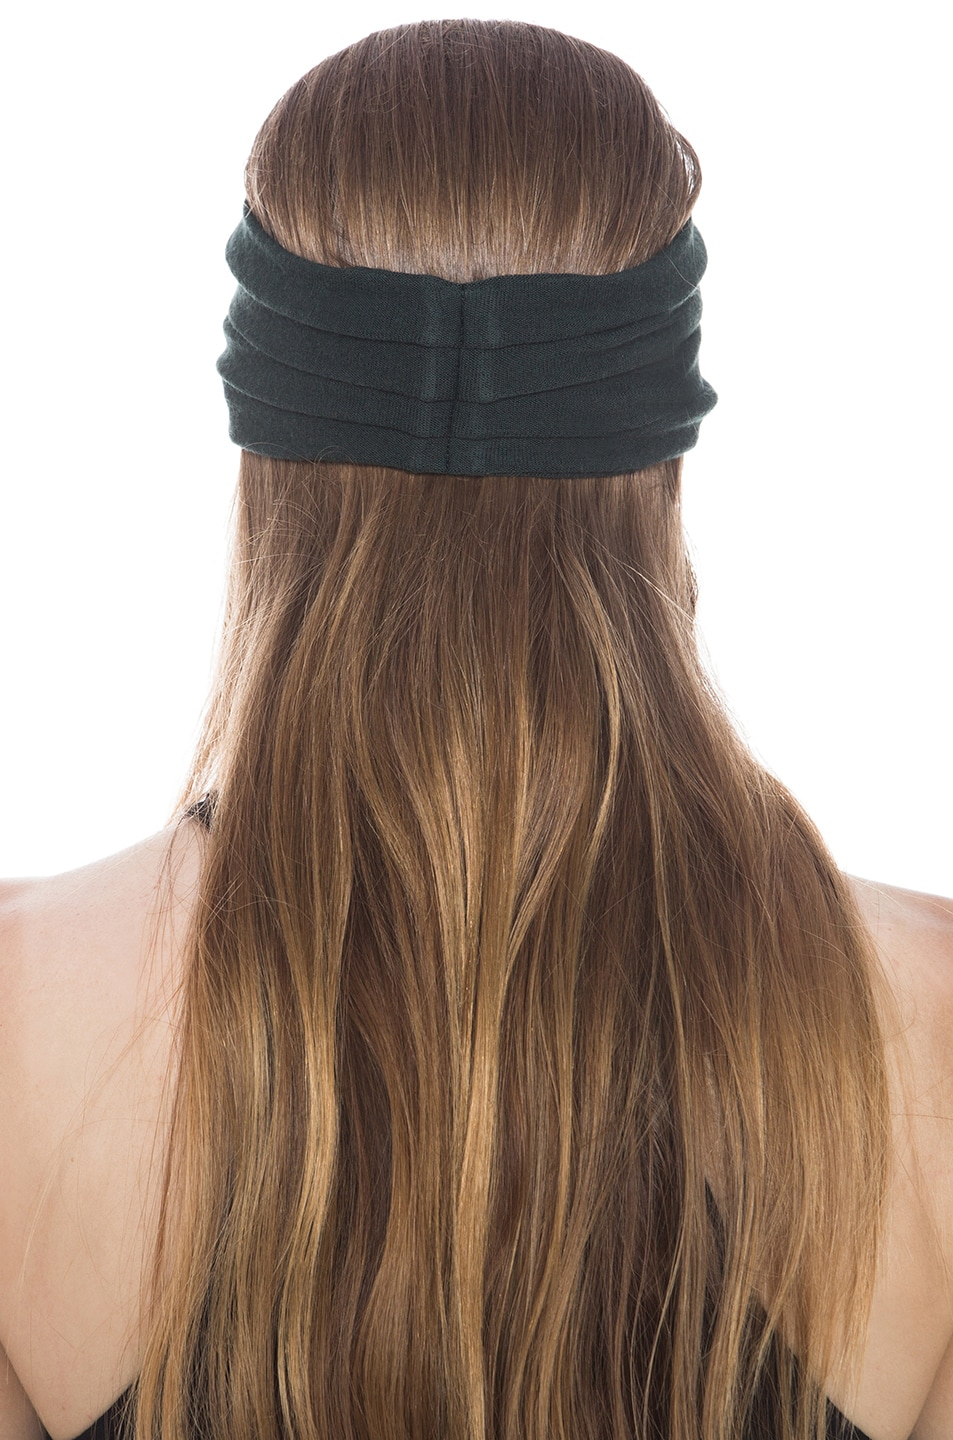 Image 3 of Eugenia Kim Chiara Wool Jersey Turban Headband in Hunter Green